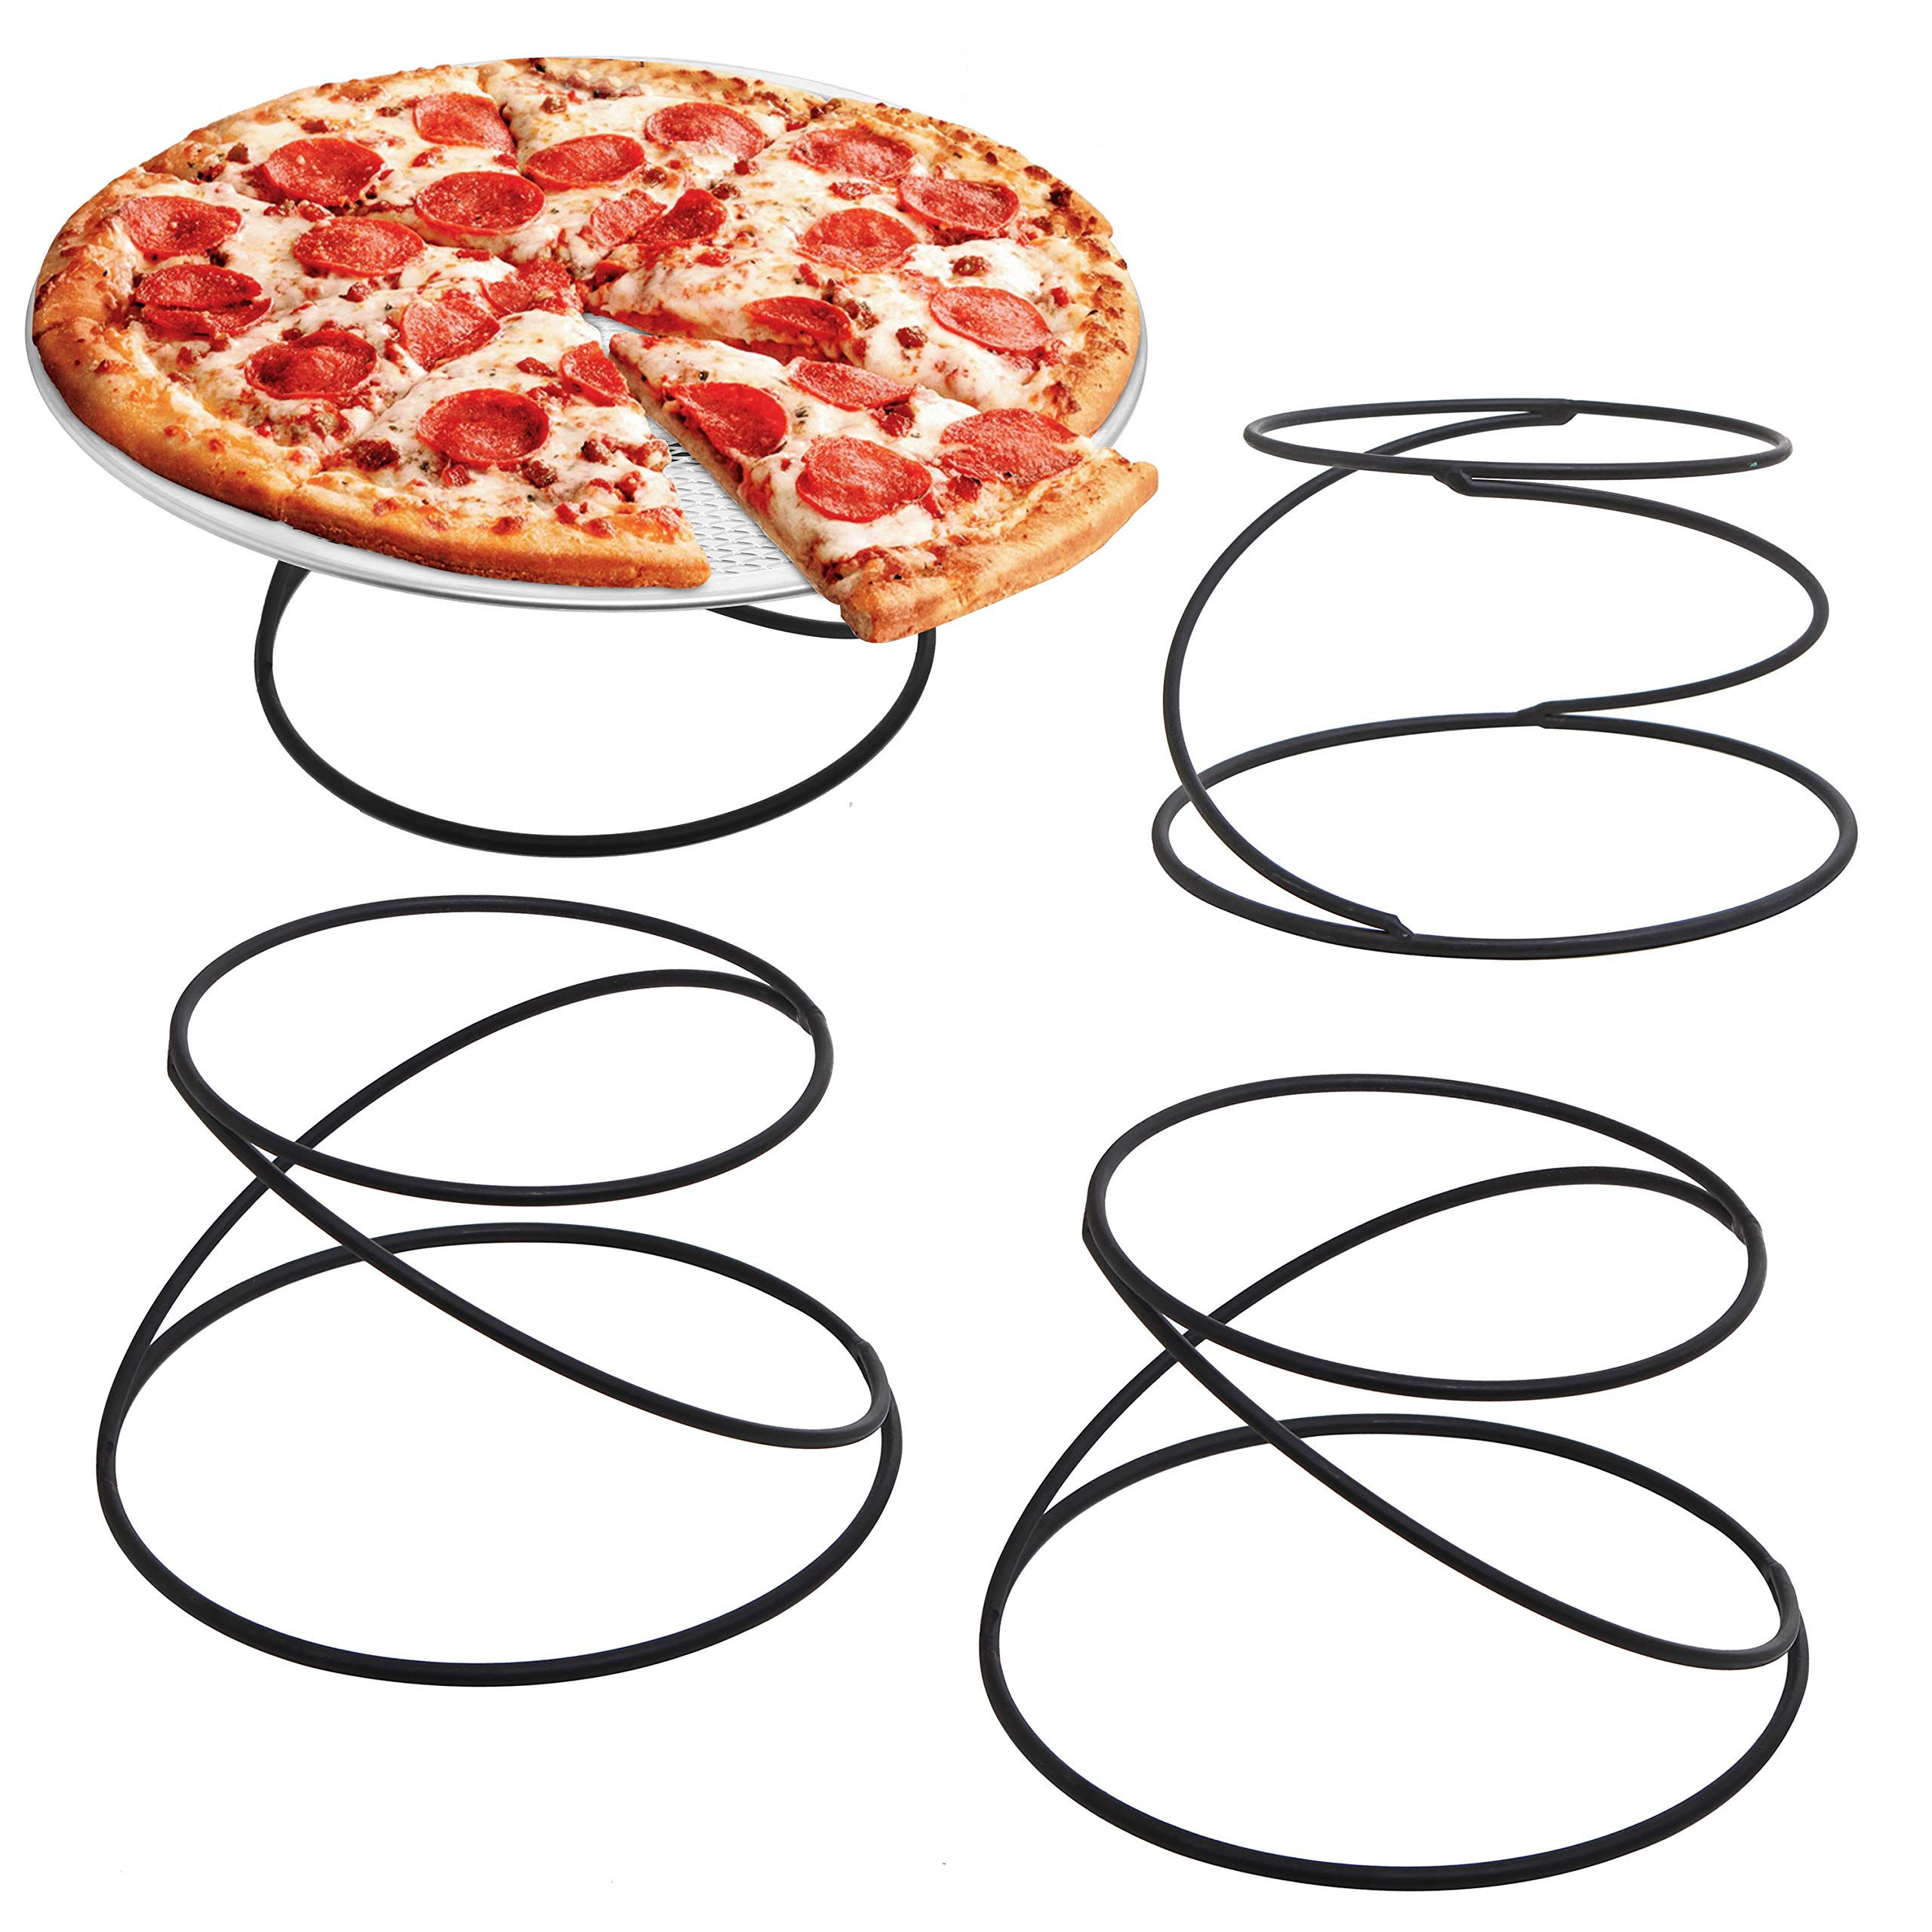 MyGift Set of 4 Metal Spiral Wire Tabletop Pizza Tray Stands, Black by MyGift (Image #1)